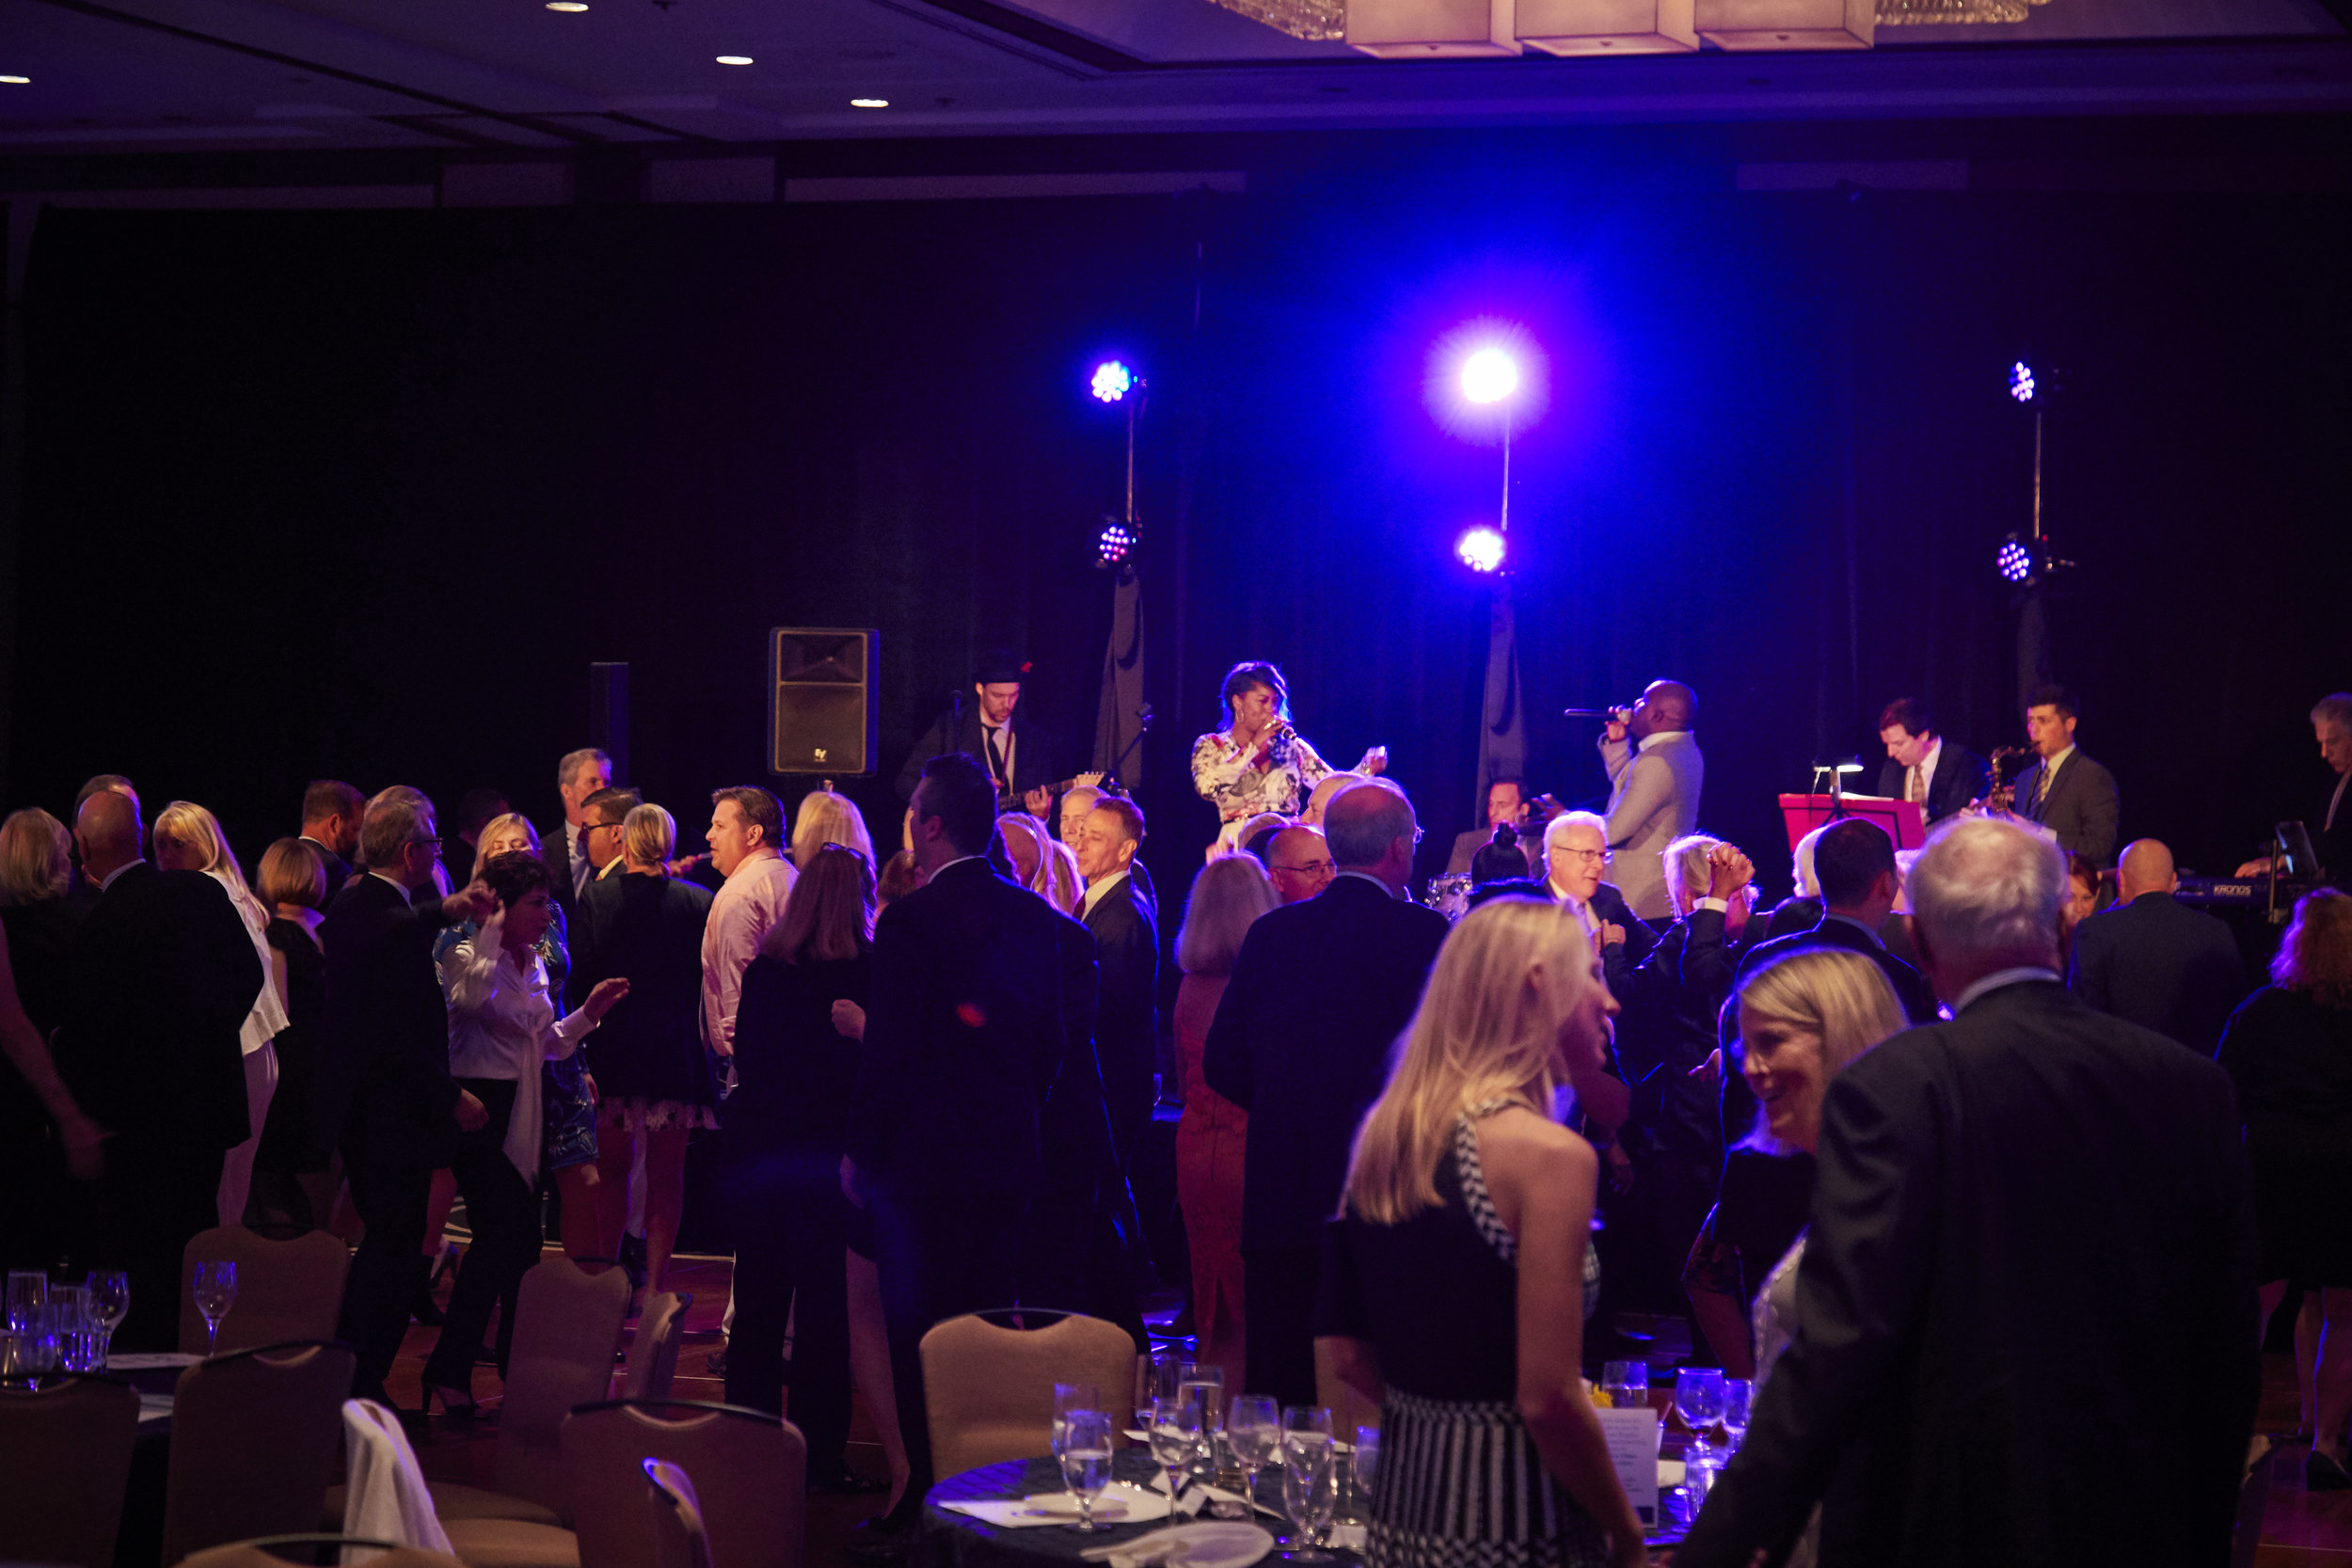 As the ballroom doors open, guests will enjoy flowing wine and a delicious dinner while they listen to live music performed by the ETA band, participate in a thrilling Live Auction with a chance to win some phenomenal, big-ticket items, and dance the night away! -